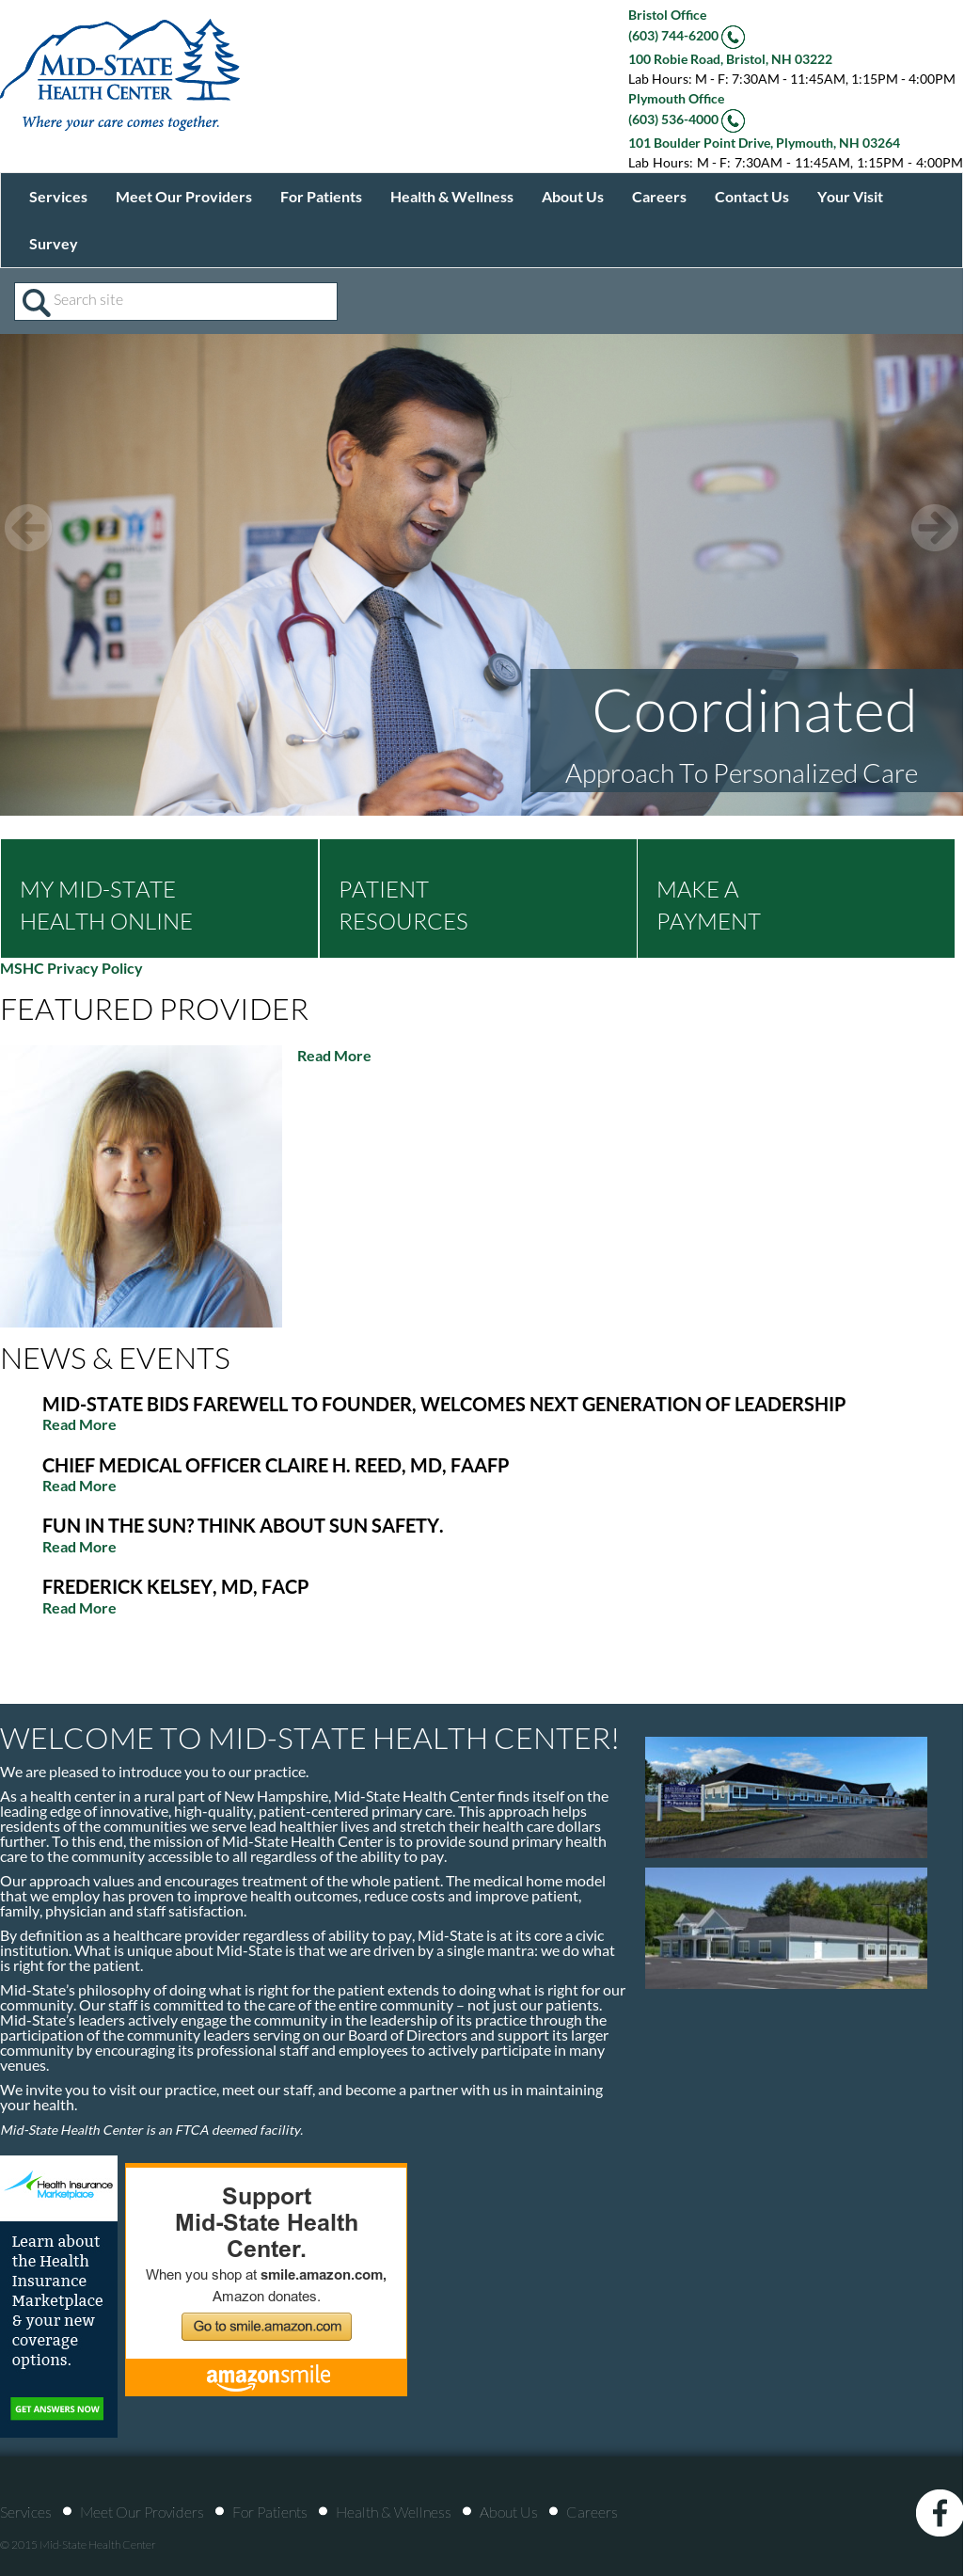 Mid State Health Center Compeors